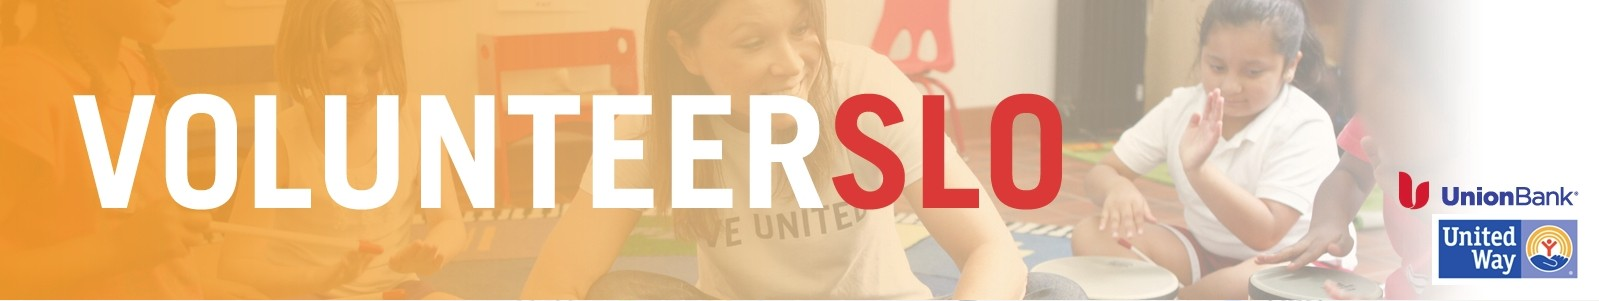 SIGN UP!  VolunteerSLO.org is an online database of local volunteer opportunities hosted by the United Way of SLO. More than 300 organizations post their upcoming events and volunteer needs for the community to engage with. - IMAGE COURTESY OF THE UNITED WAY OF SLO